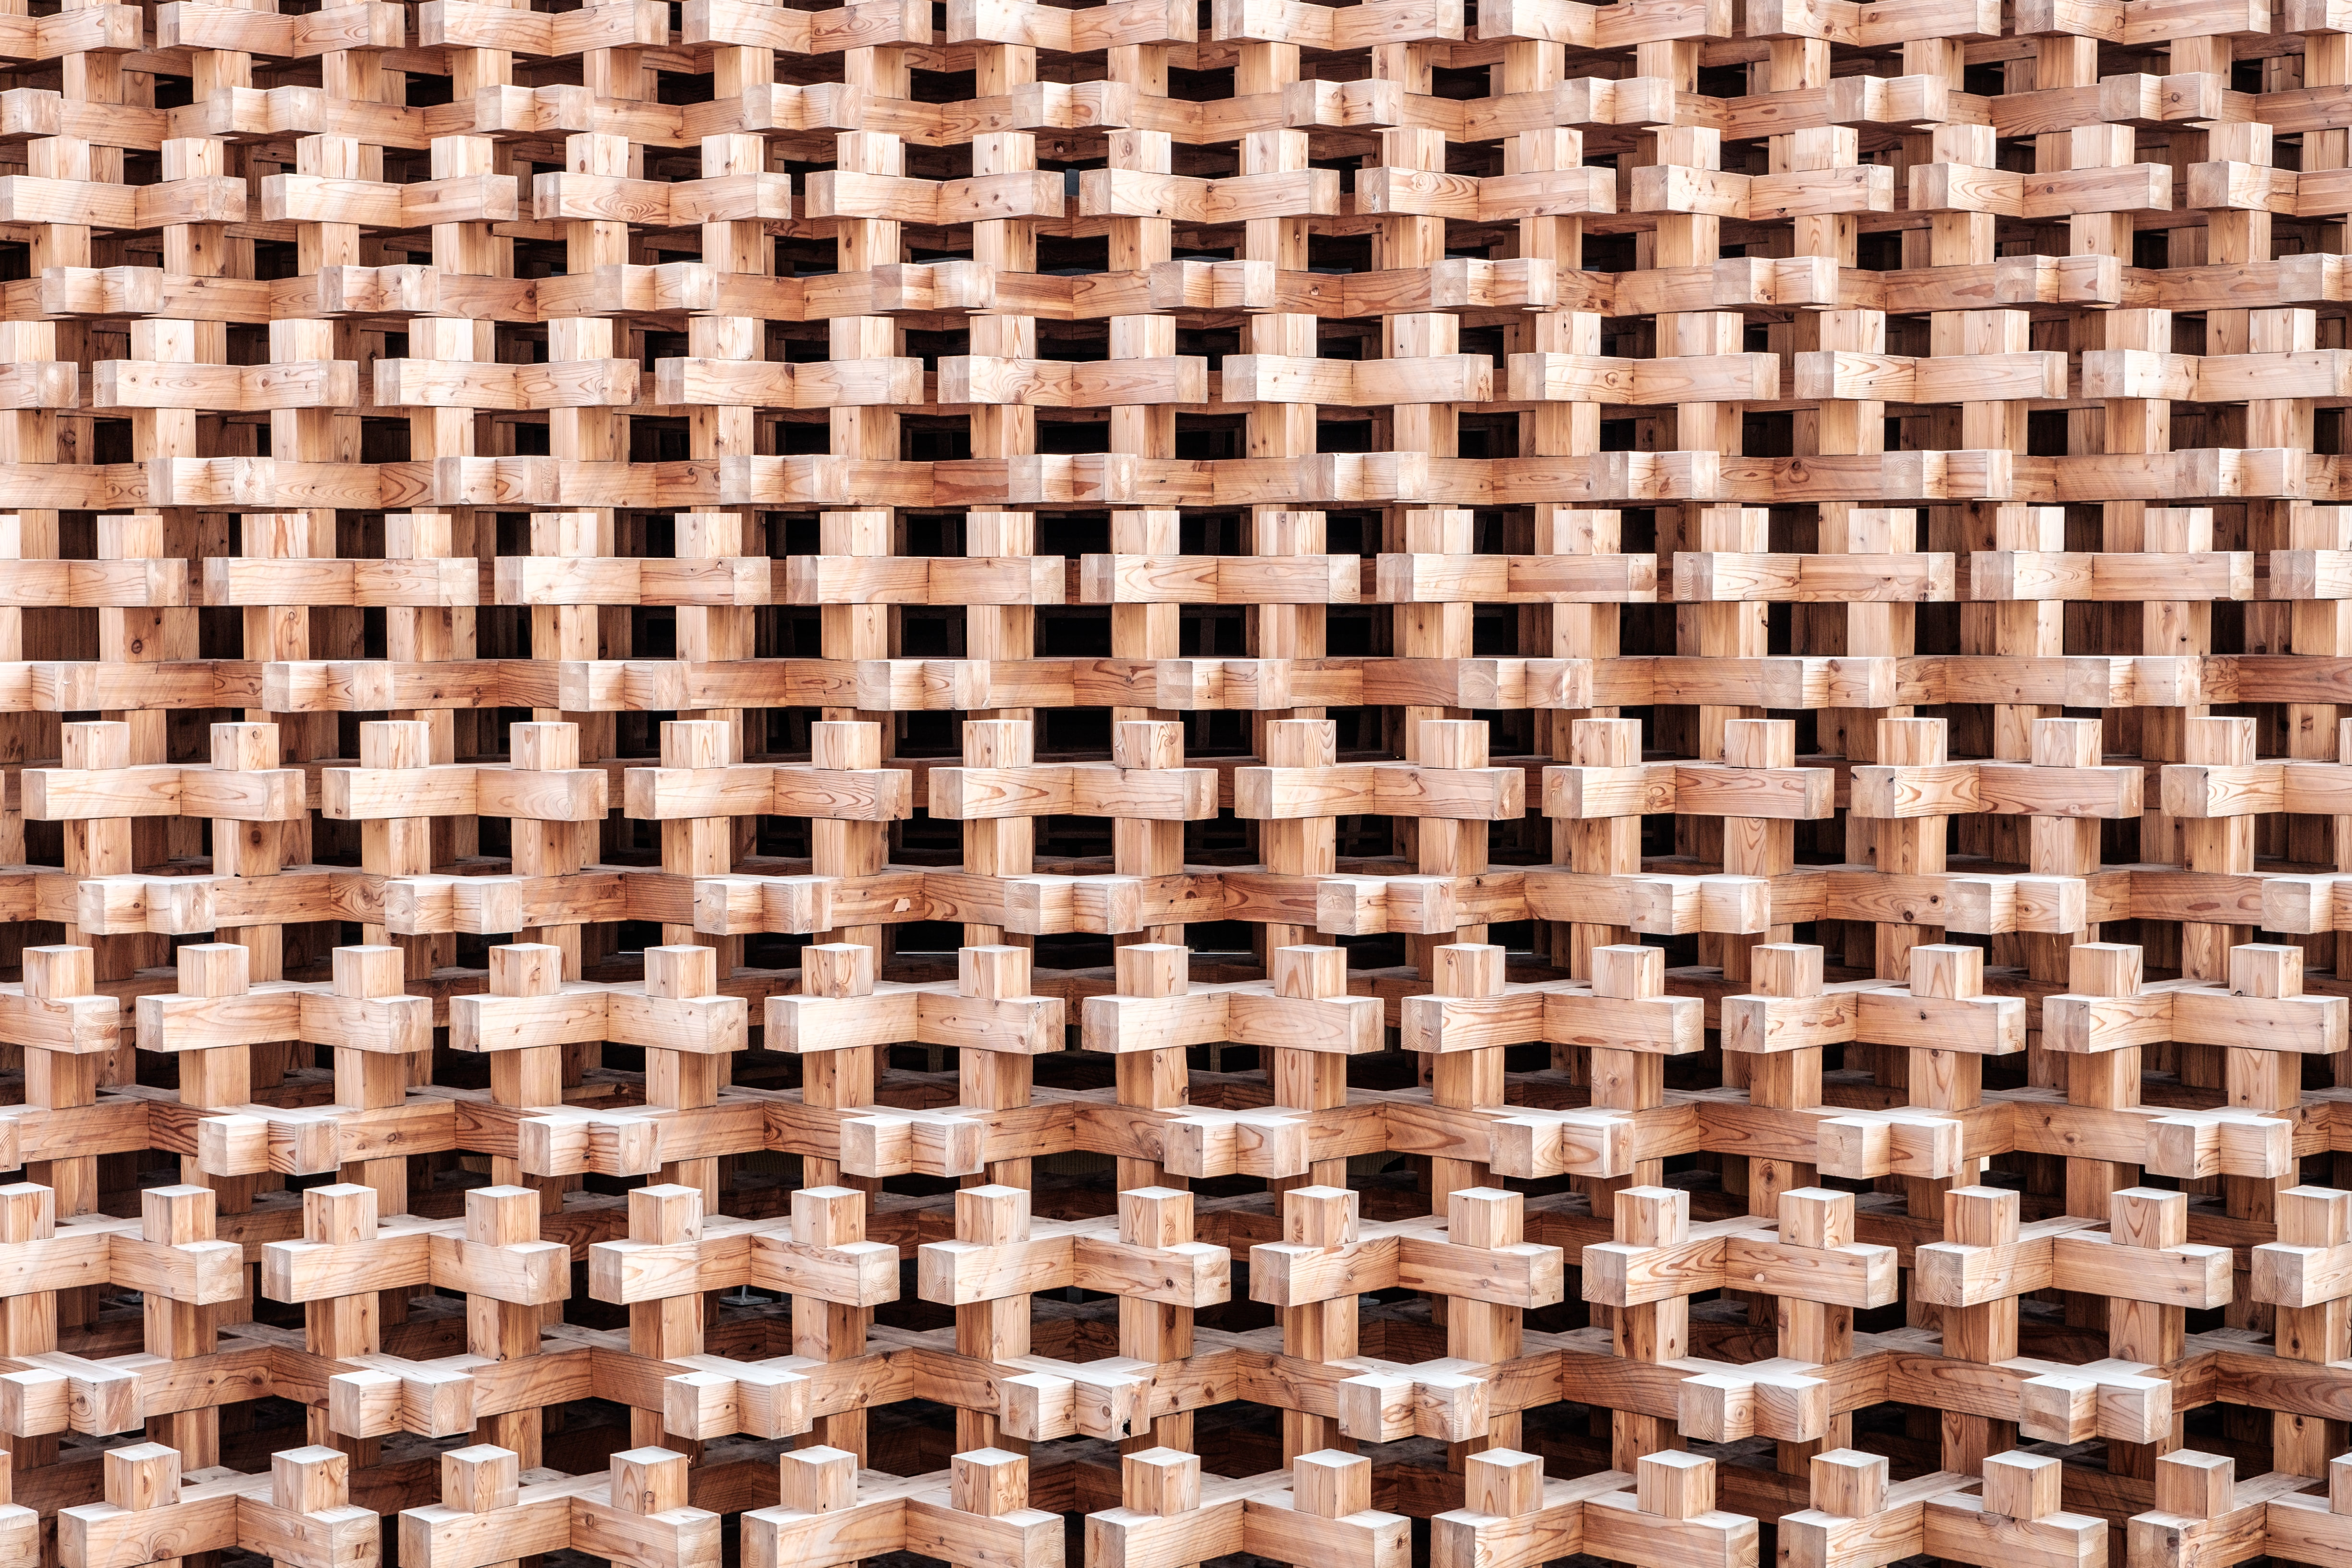 A regular pattern made up of cross-shaped wooden blocks stacked up on top of each other